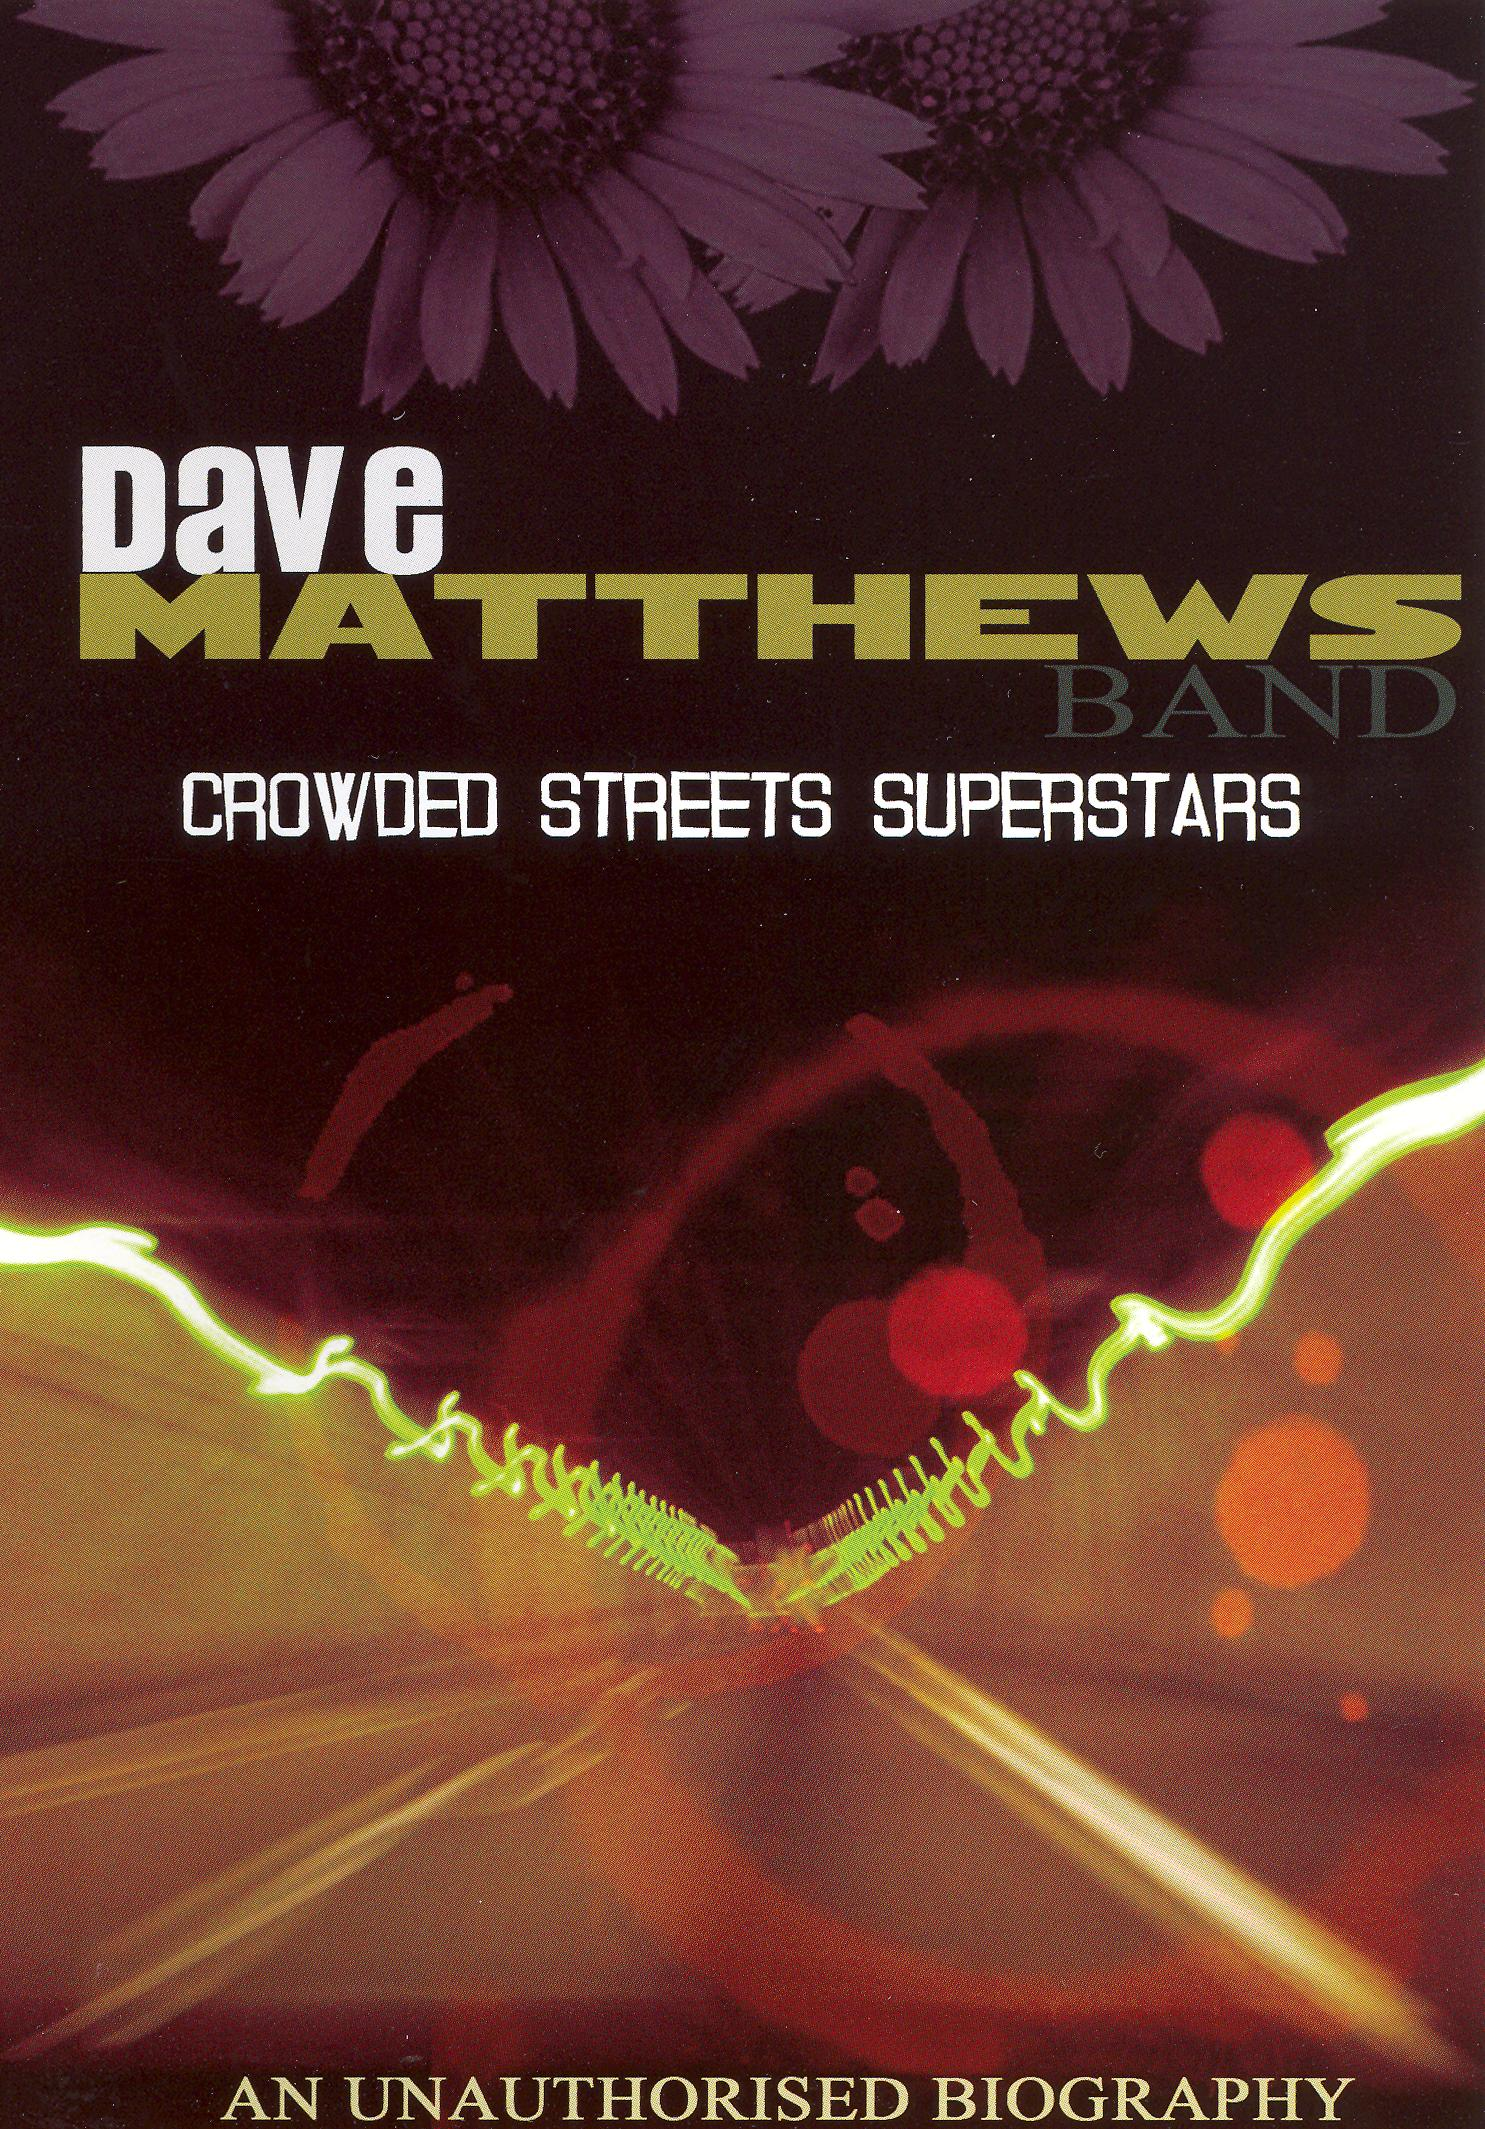 The Dave Matthews Band: Crowded Streets Superstars